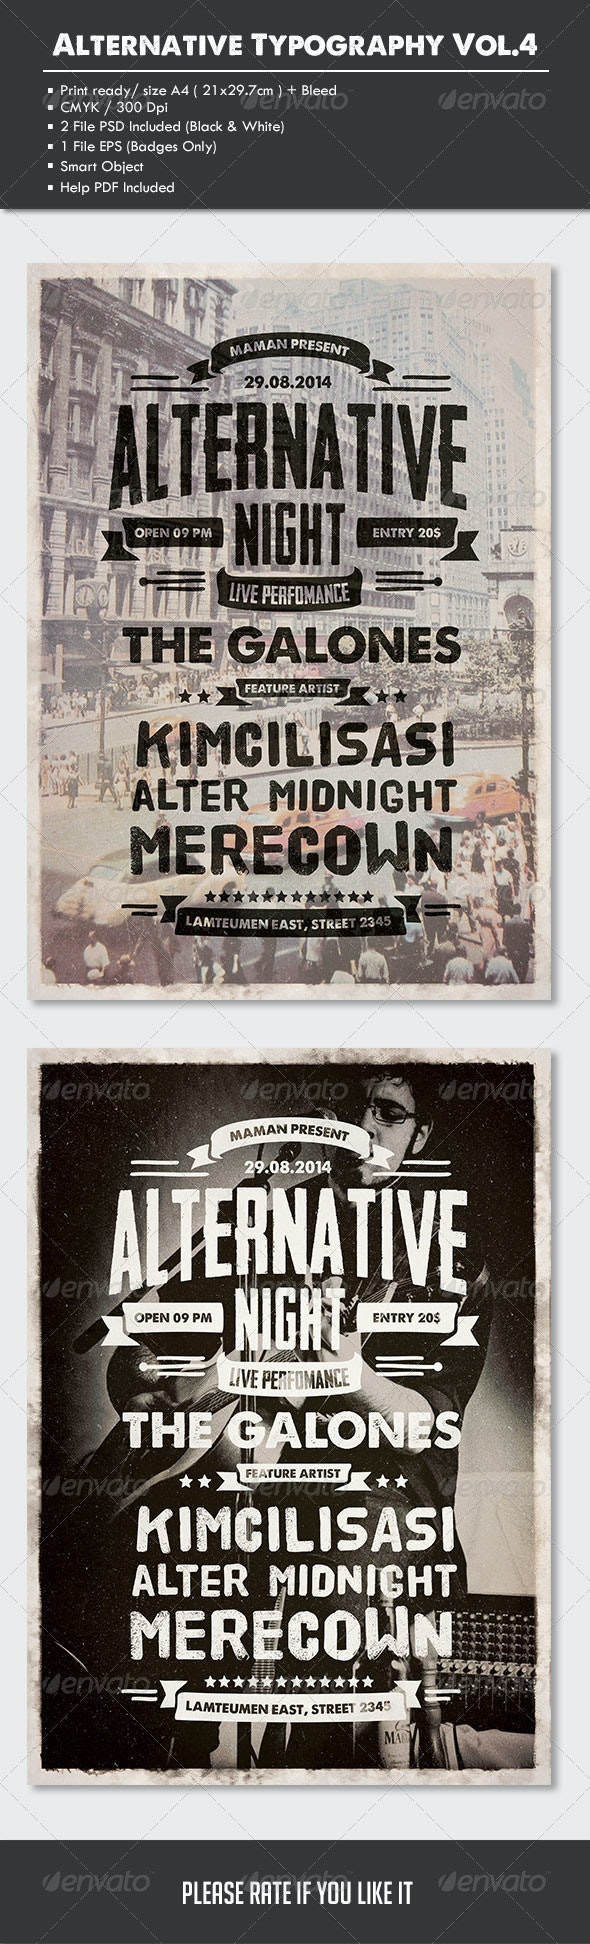 Alternative Typography Flyer/Poster Vol.4 - Concerts Events